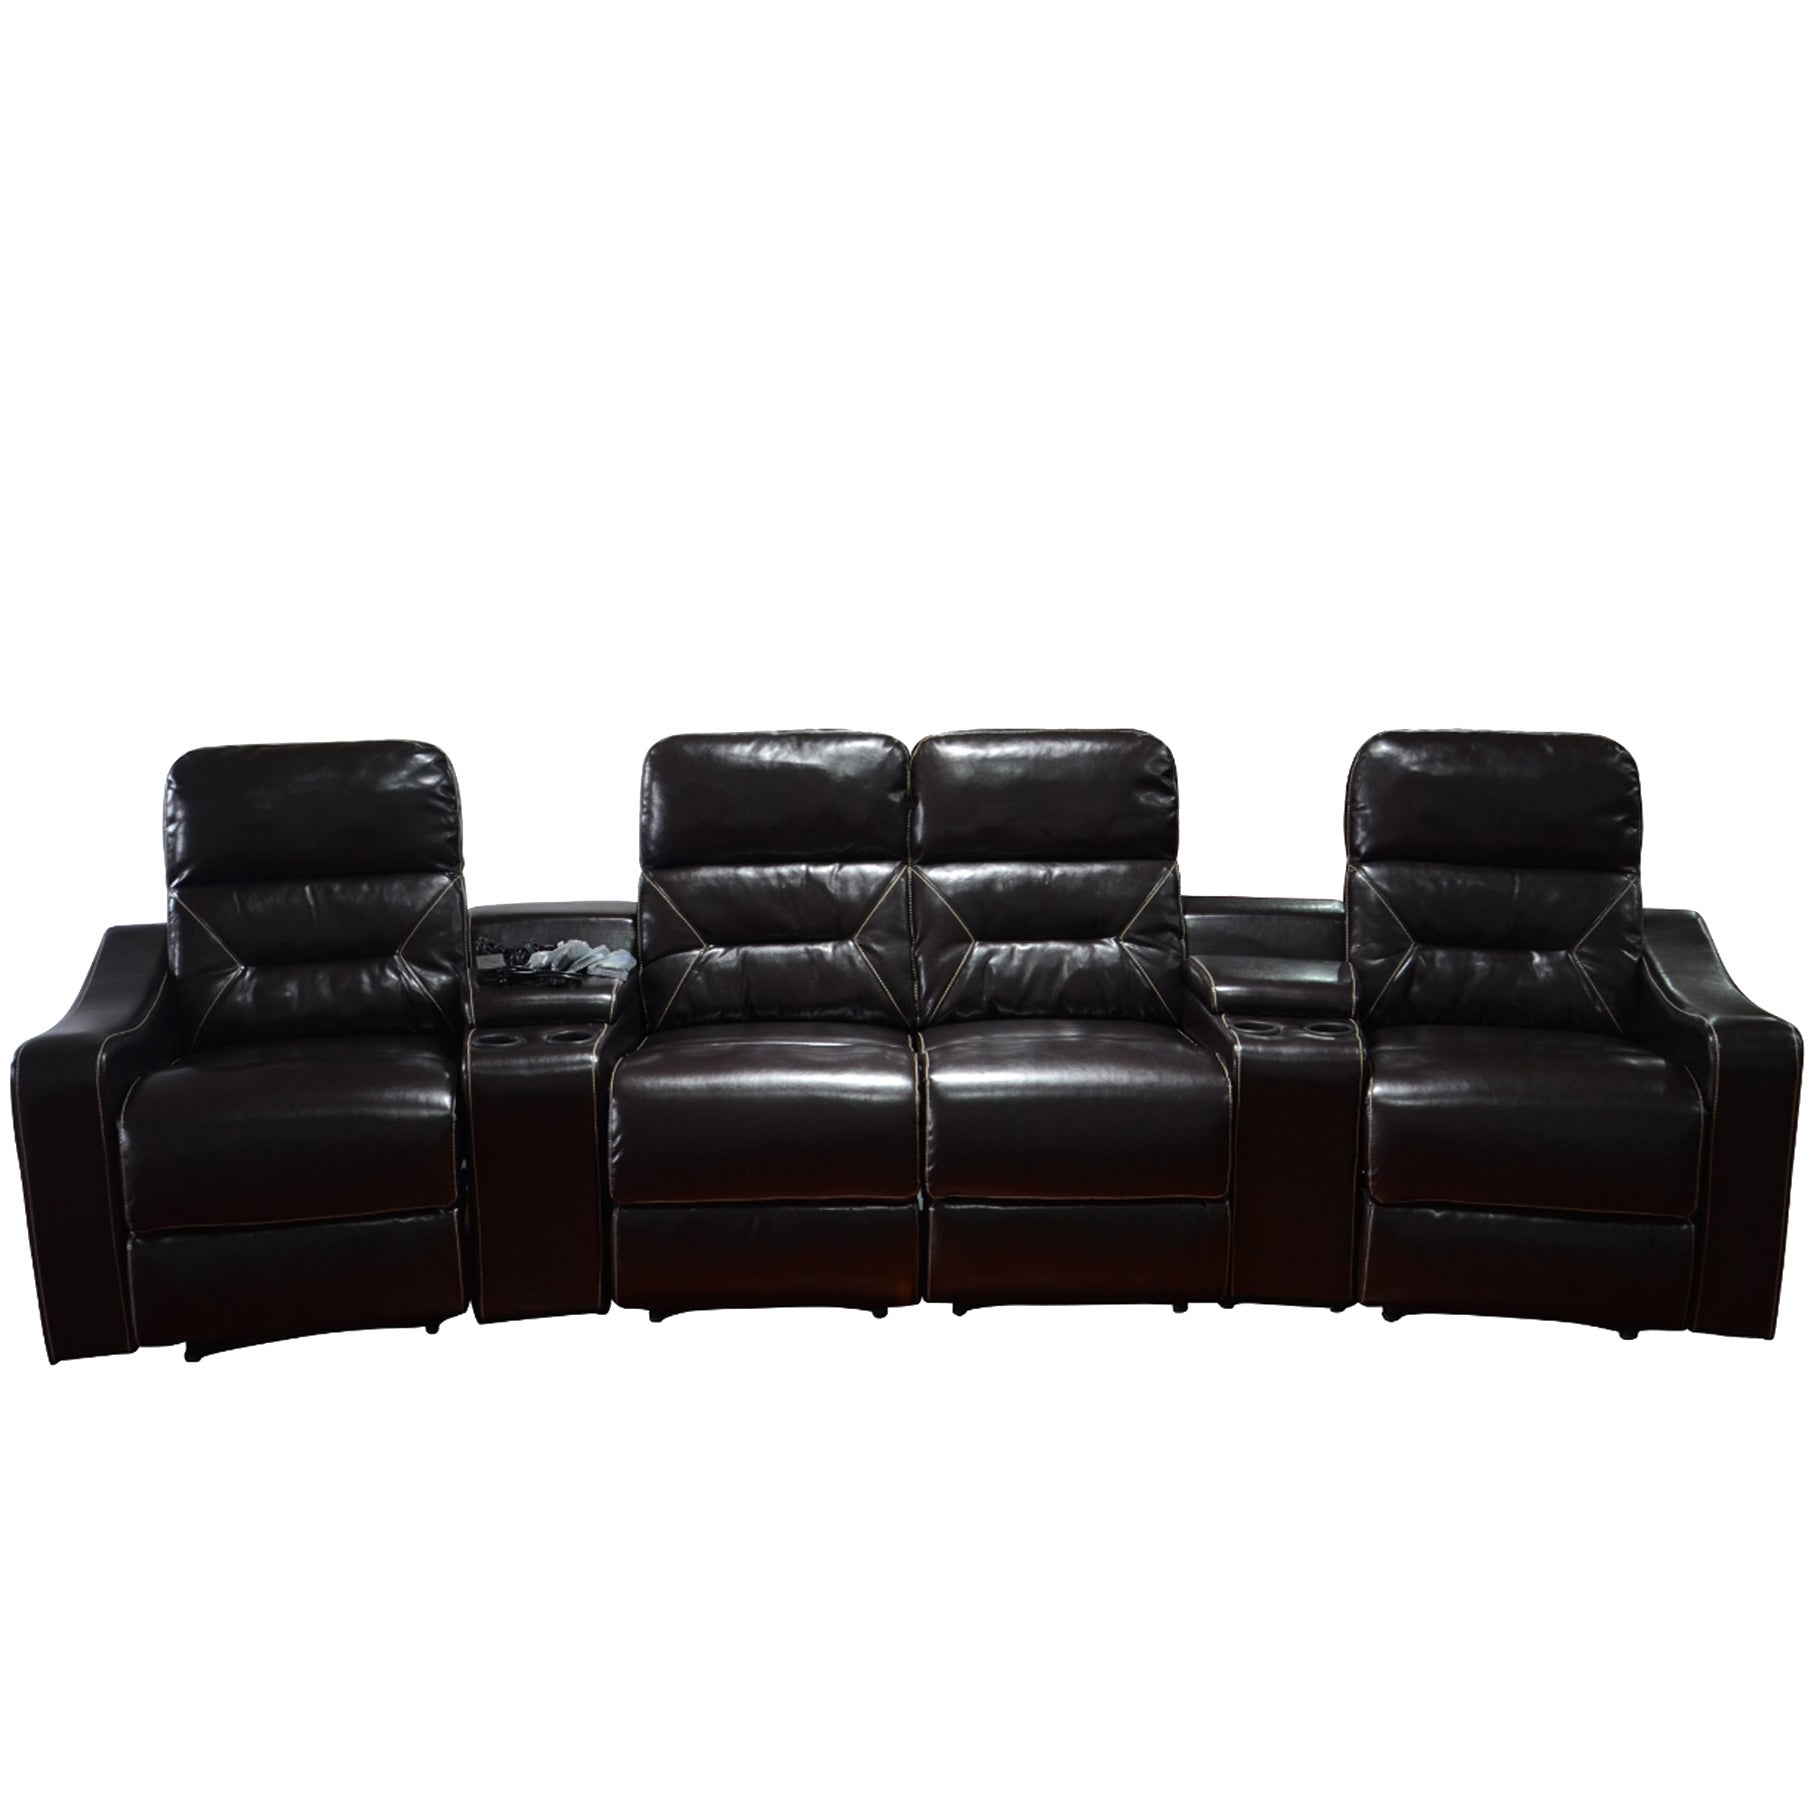 Delightful Shop MCombo Faux Leather 4 Seat Home Theater Recliner Sofa   Free Shipping  Today   Overstock.com   14415509